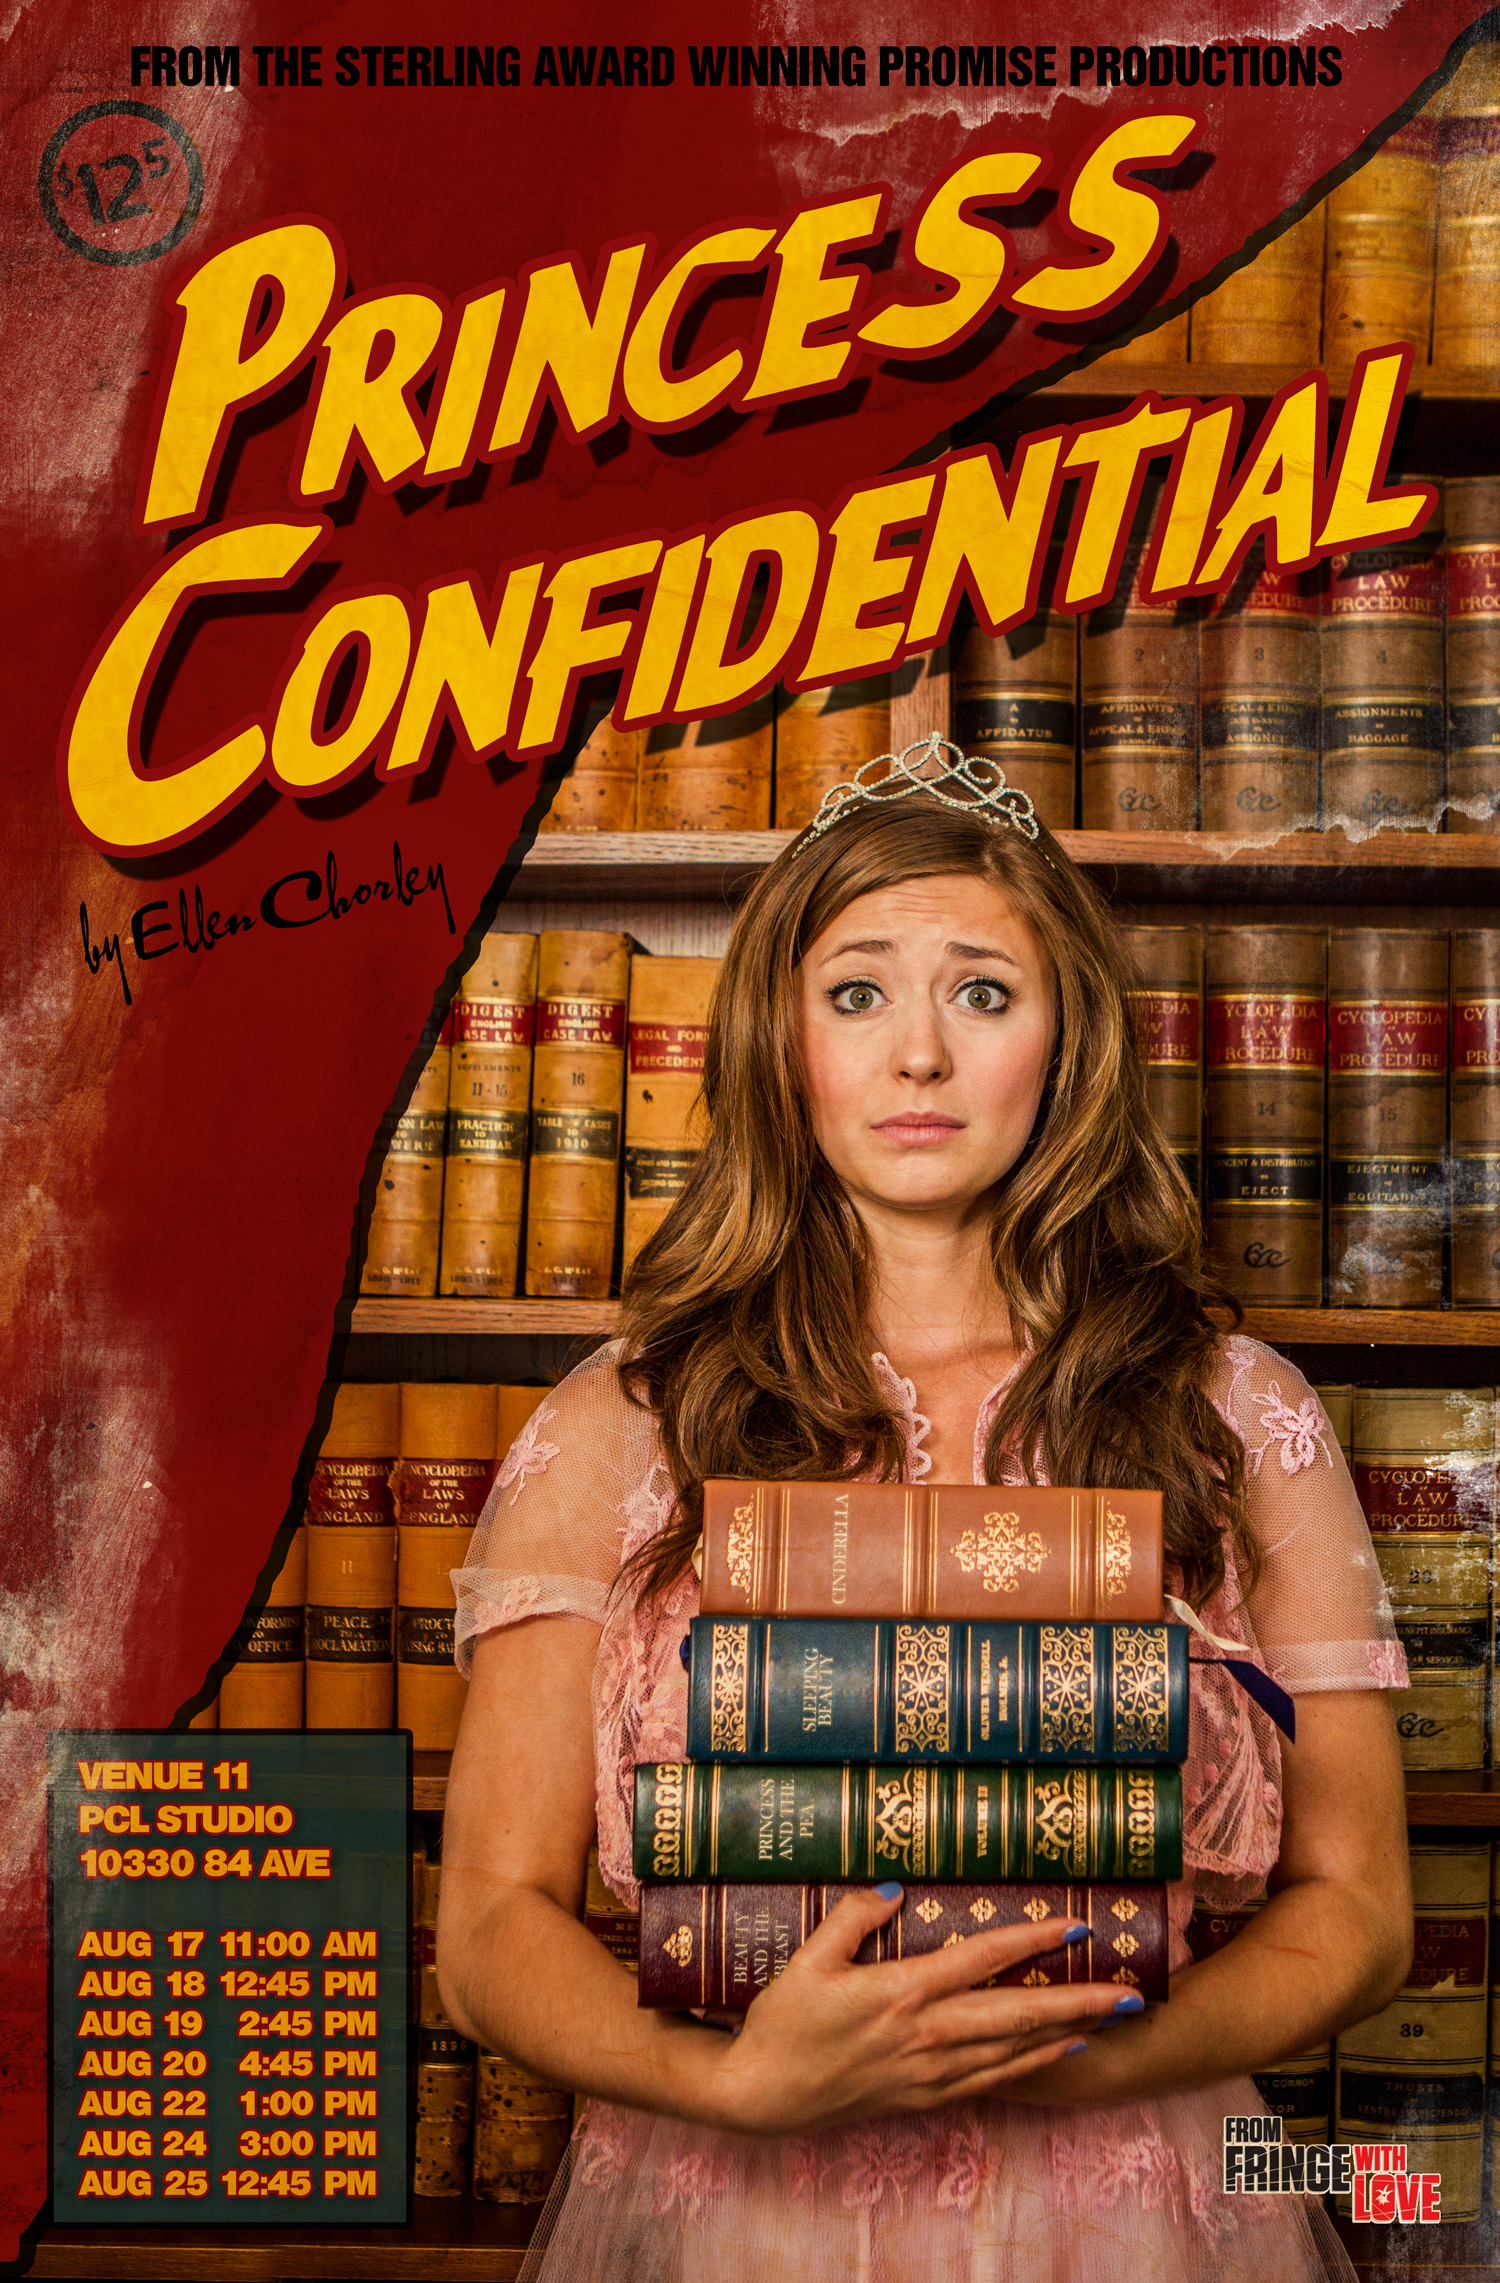 Princess-Confidential-Poster-Red.jpg